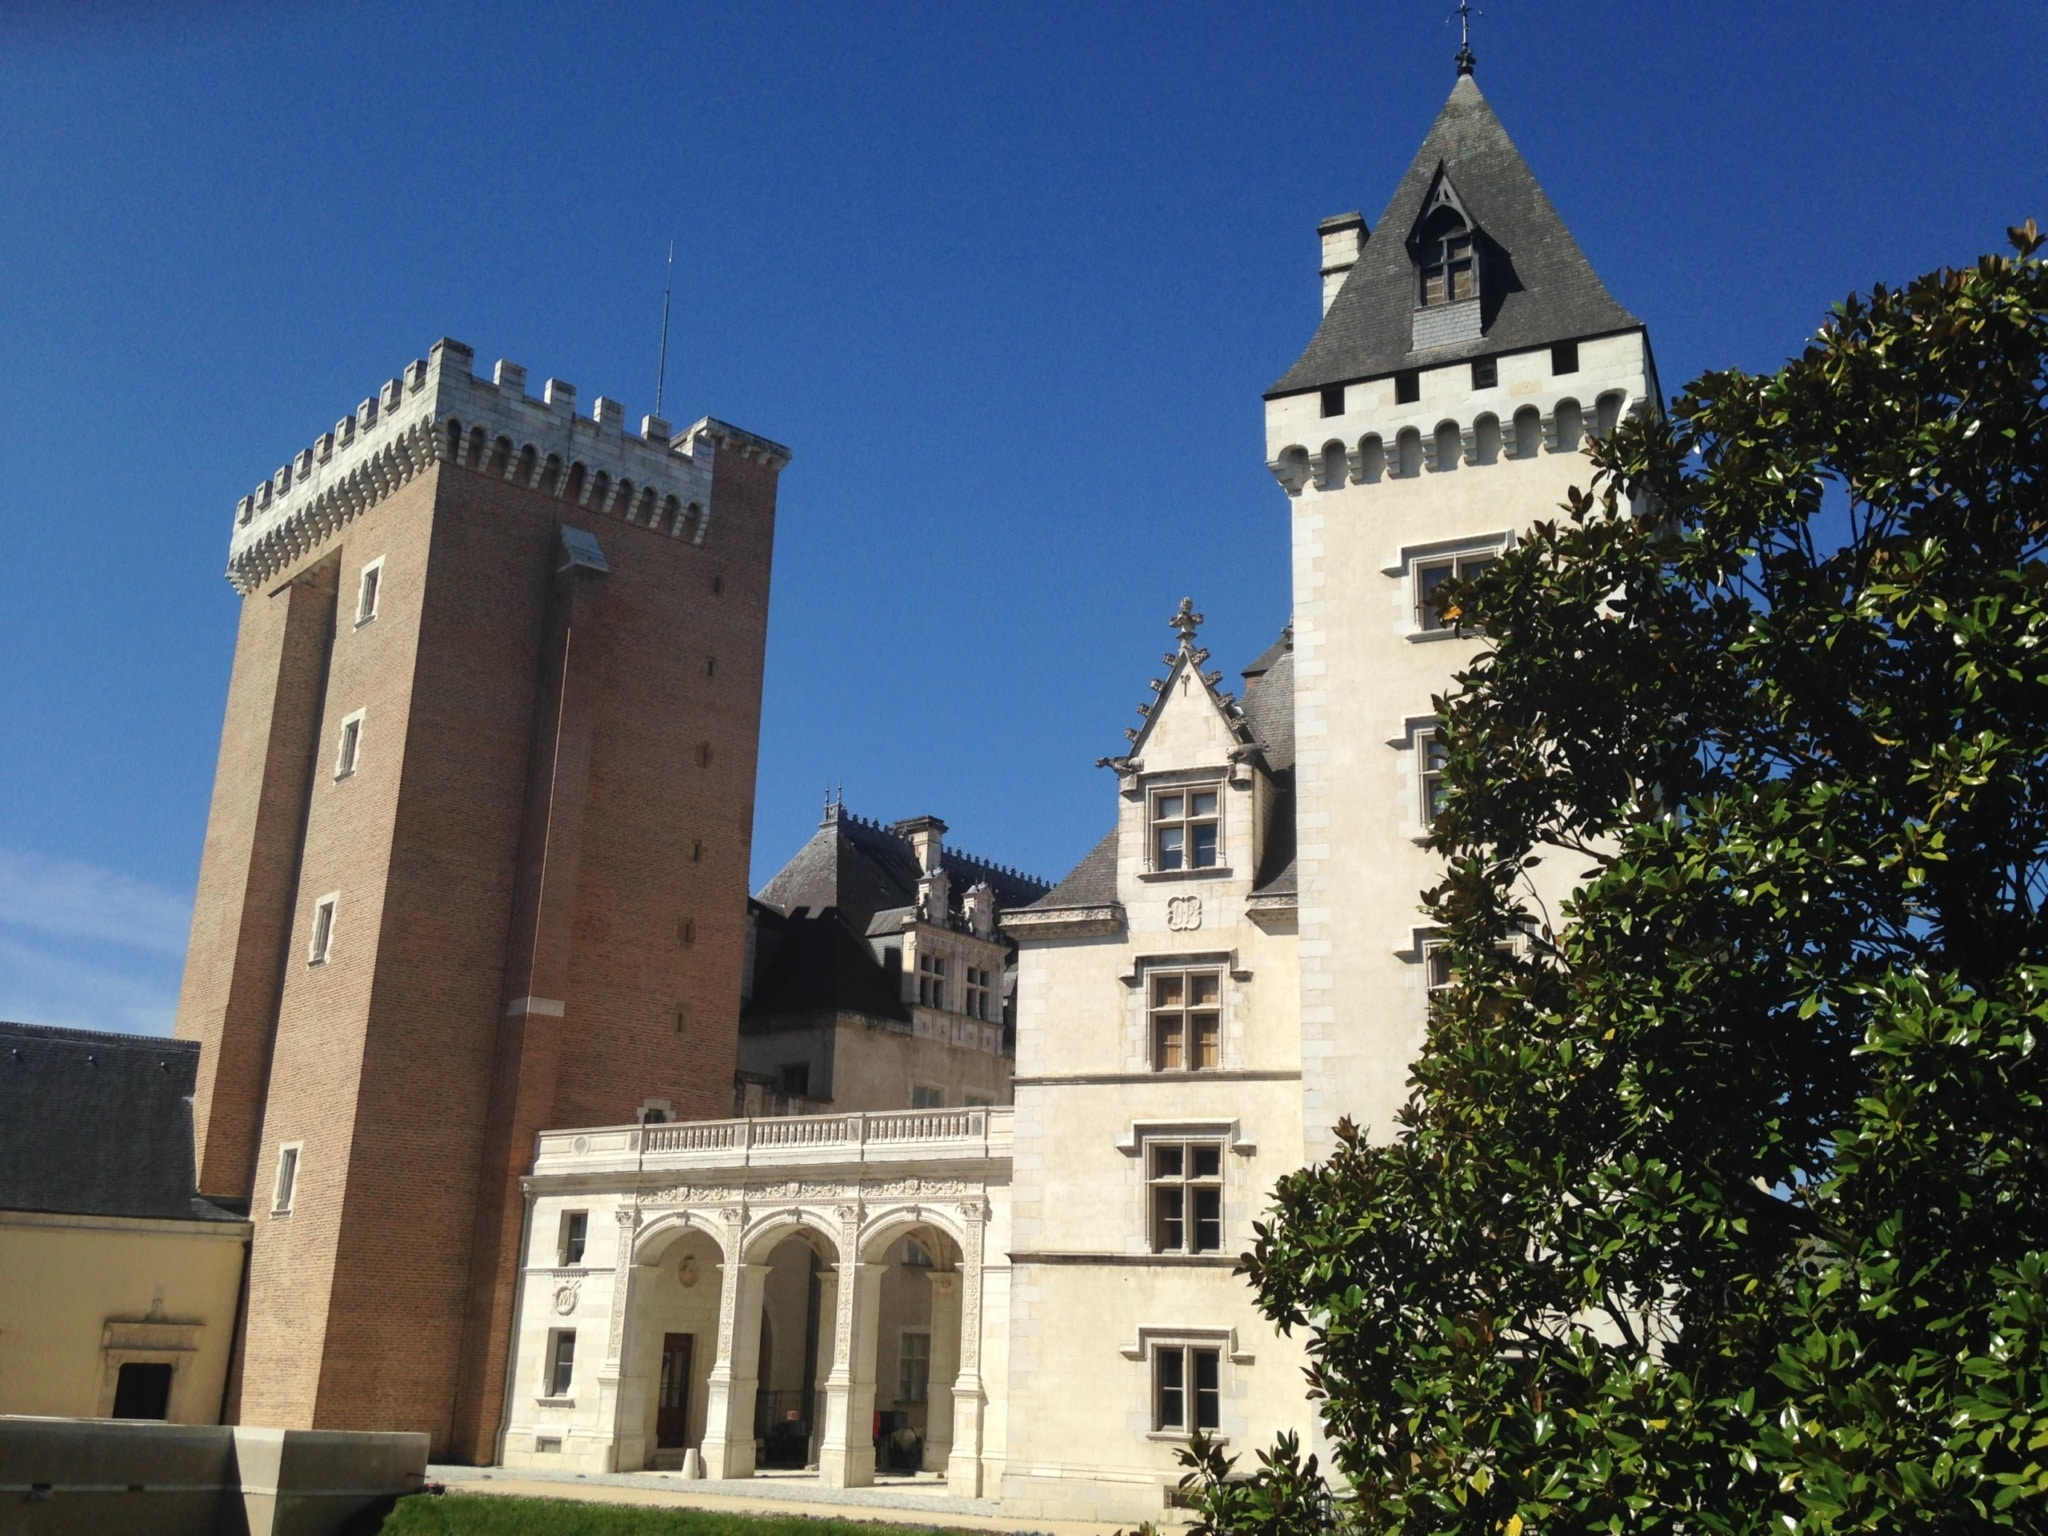 visite-guidée-bearn-Pau-Chateau ©CDT64-E.Roy